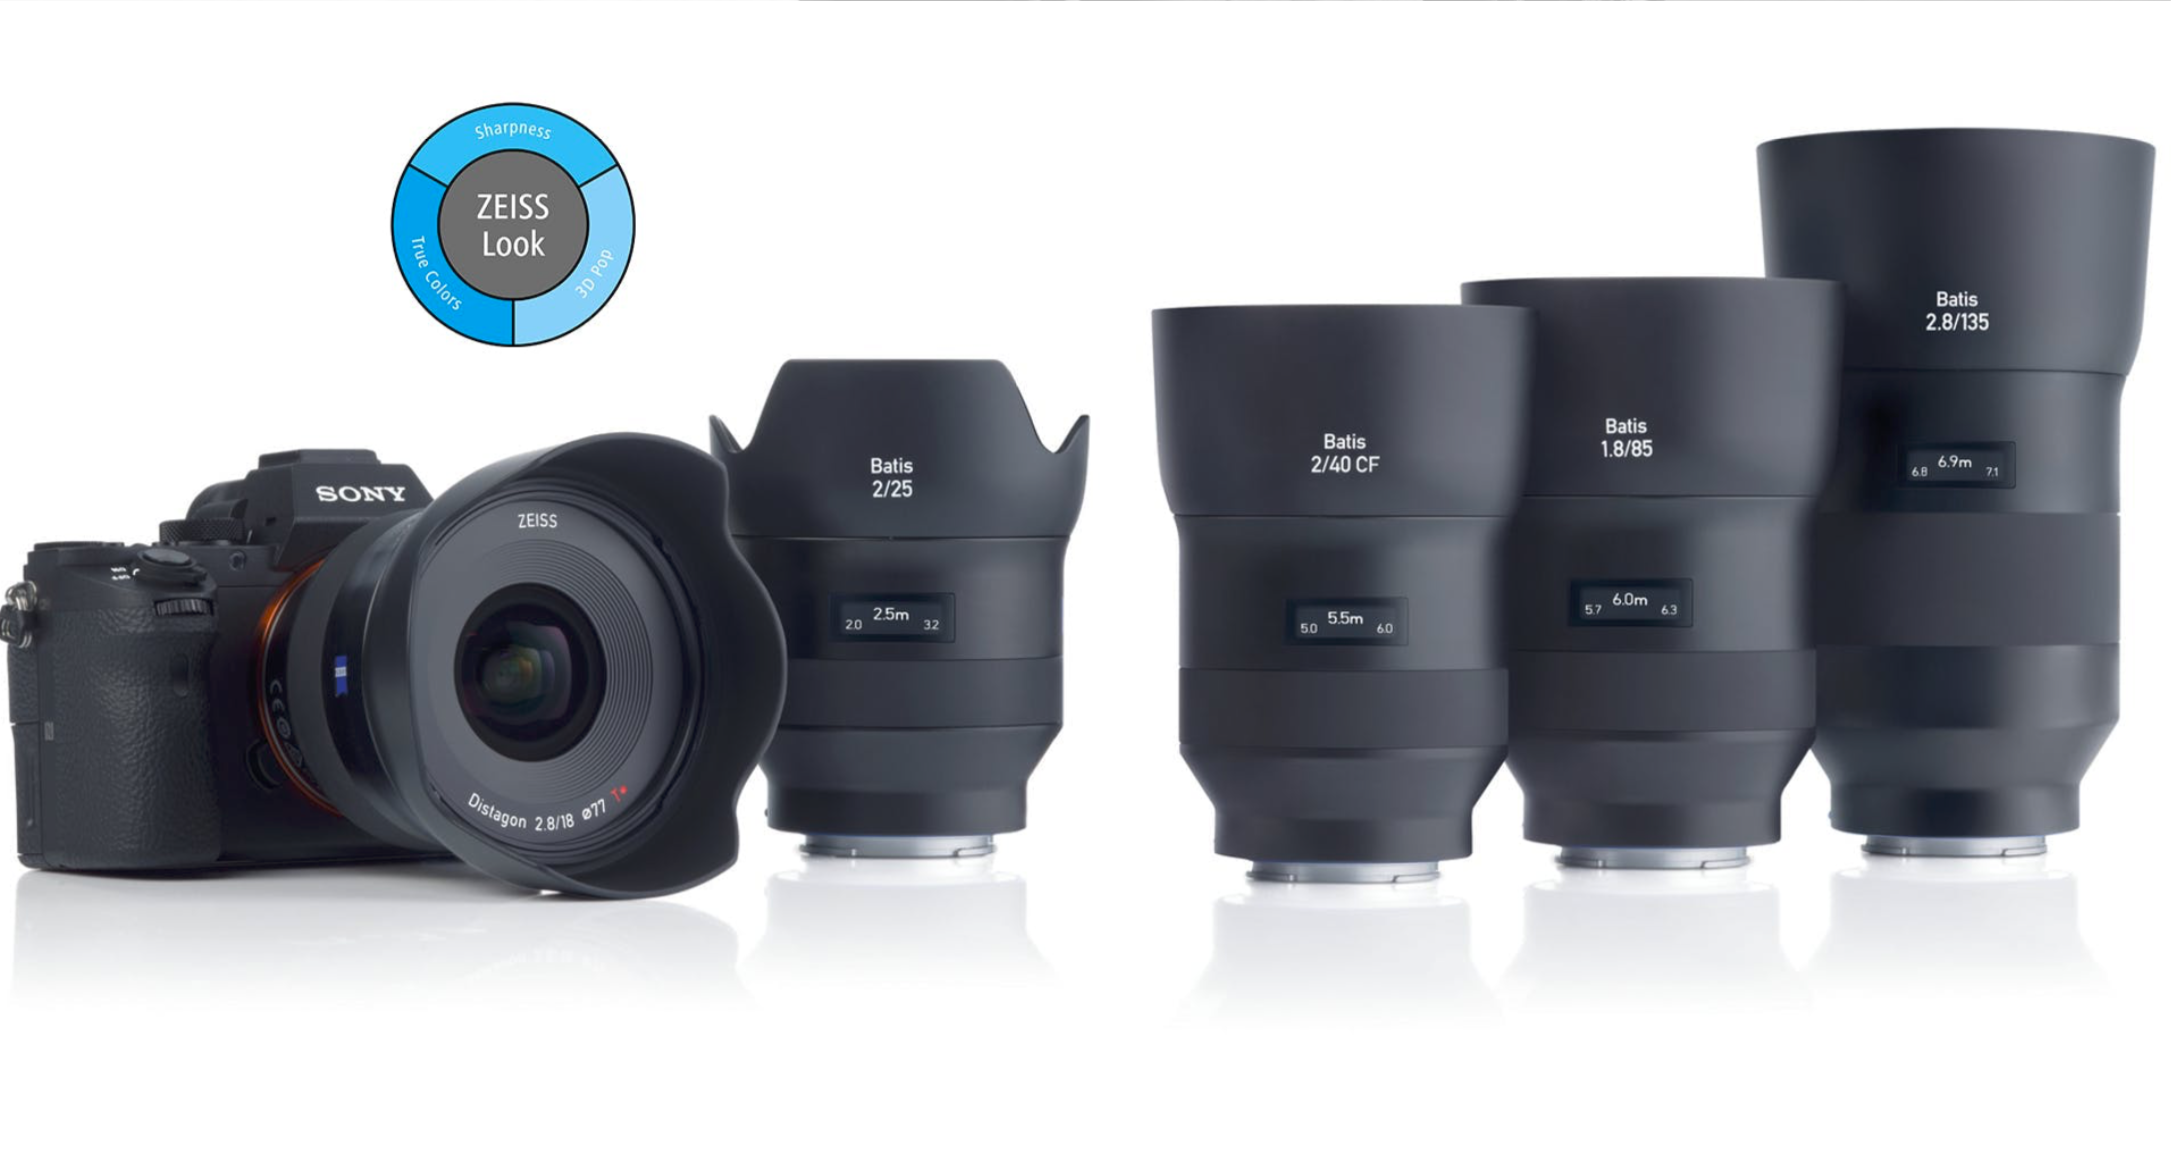 ZEISS Batis – Review of the complete line-up